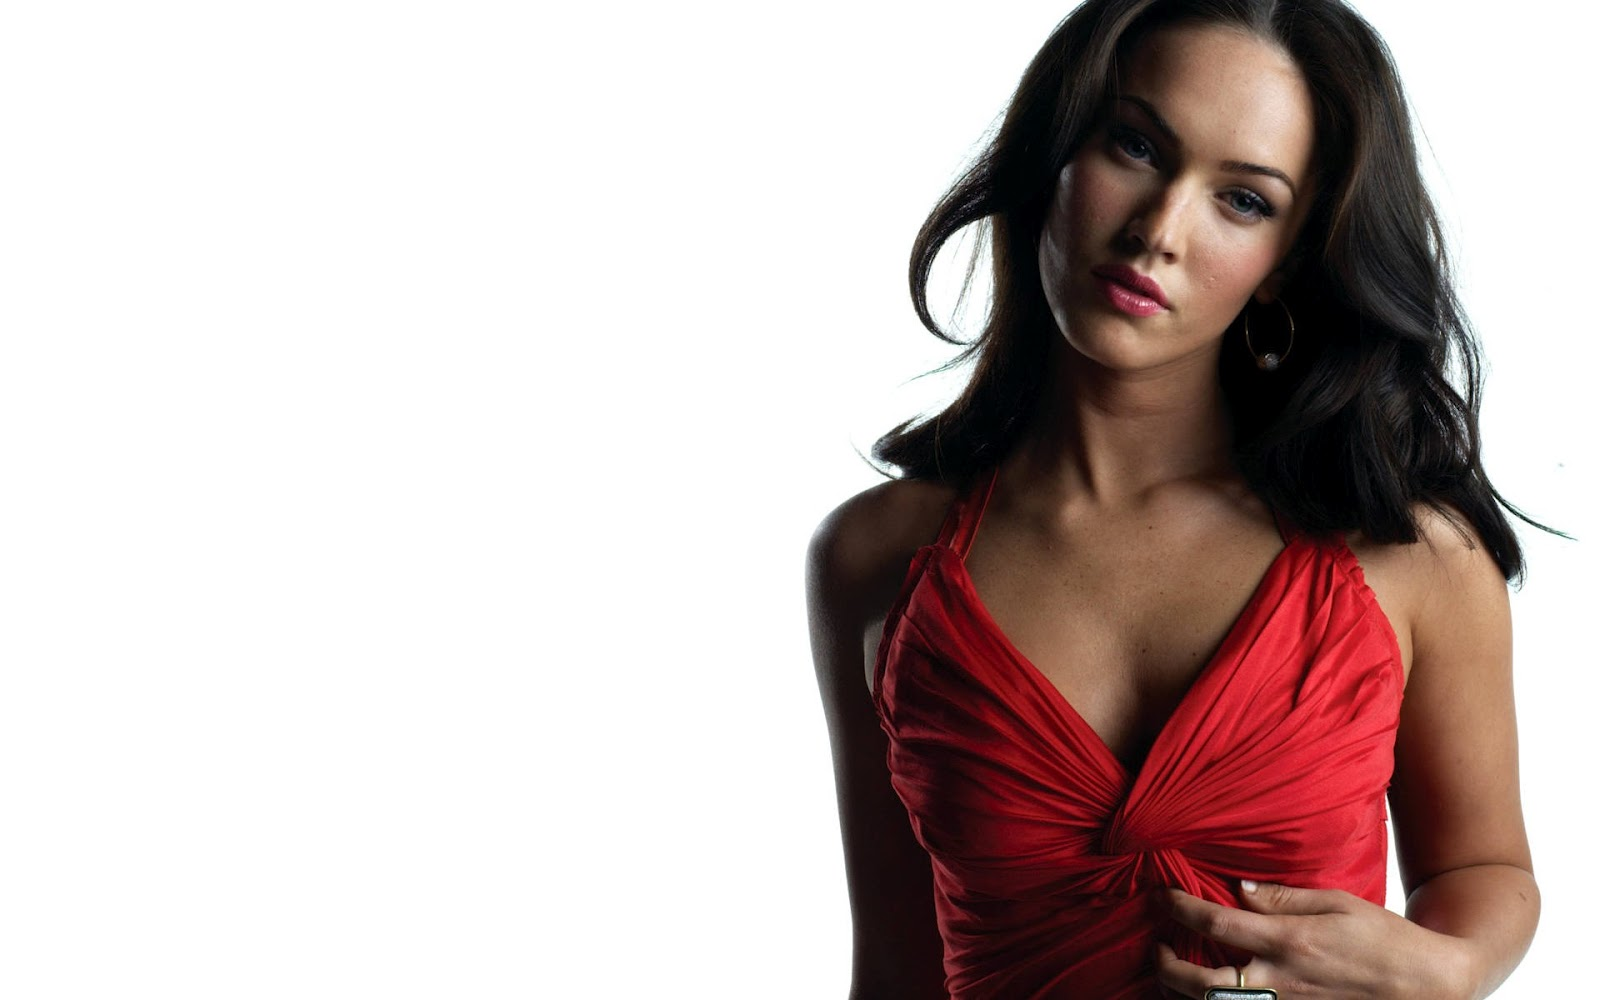 megan fox desktop wallpaper women backgrounds Download megan fox 1600x1000